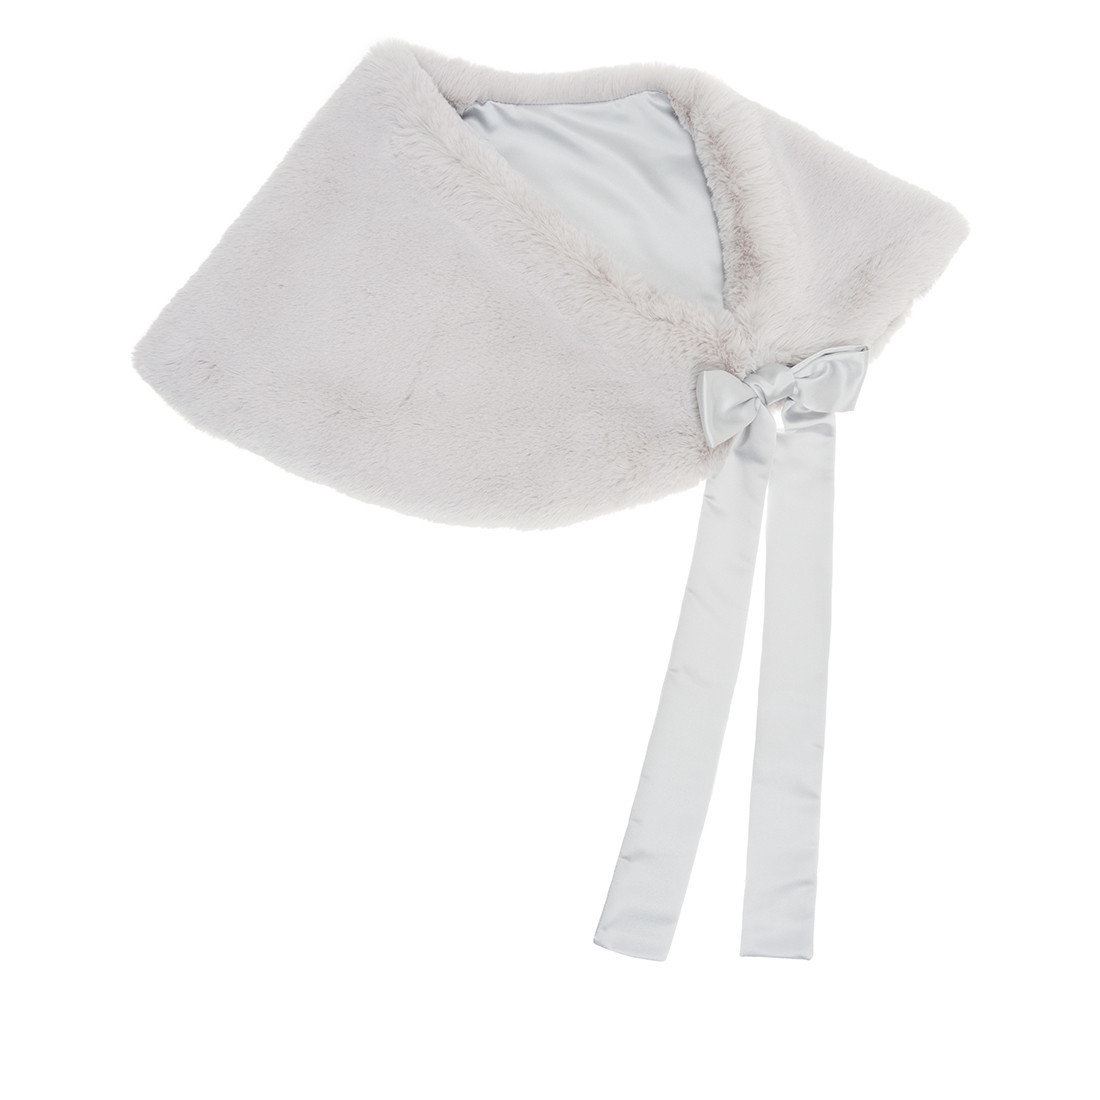 Helen Moore Bridal Shoulder Wrap ermine